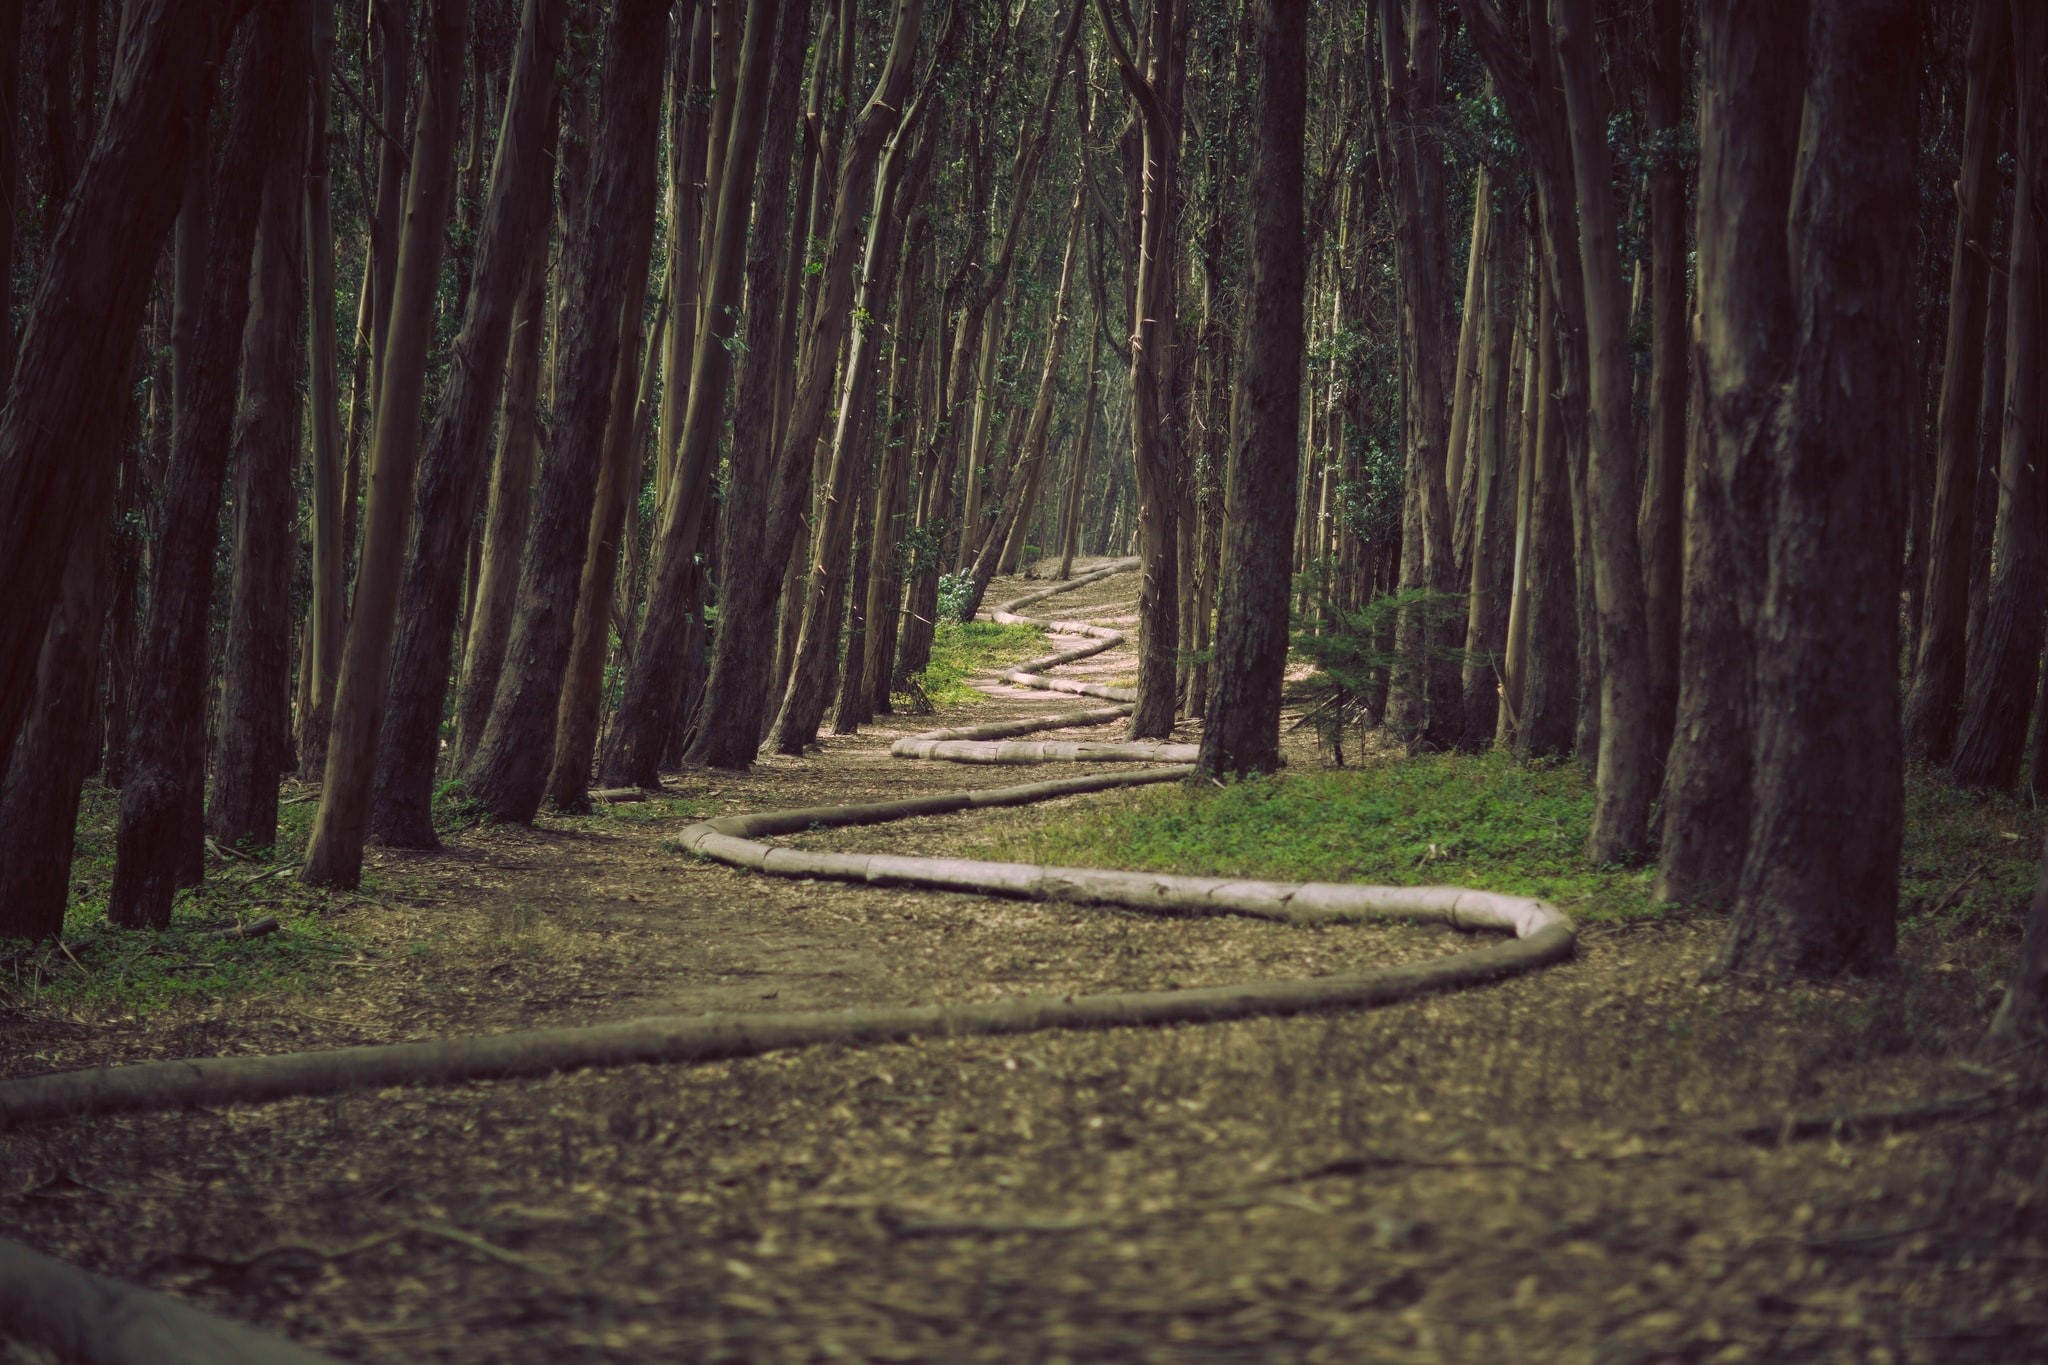 Intuition is like a winding path